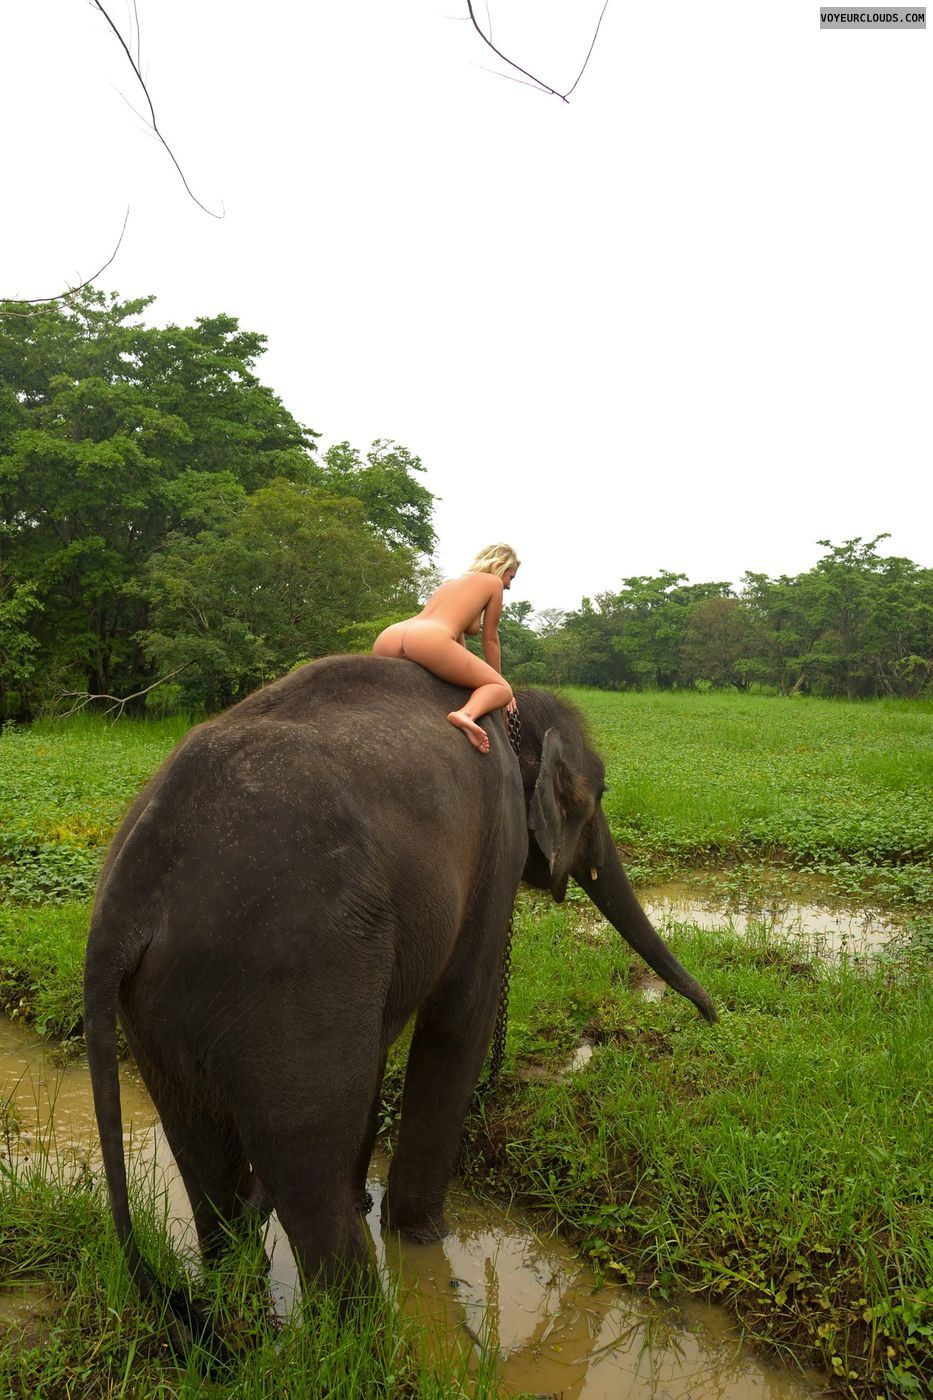 naked-girl-riding-elephant-naked-young-kids-porn-free-xxxvideos